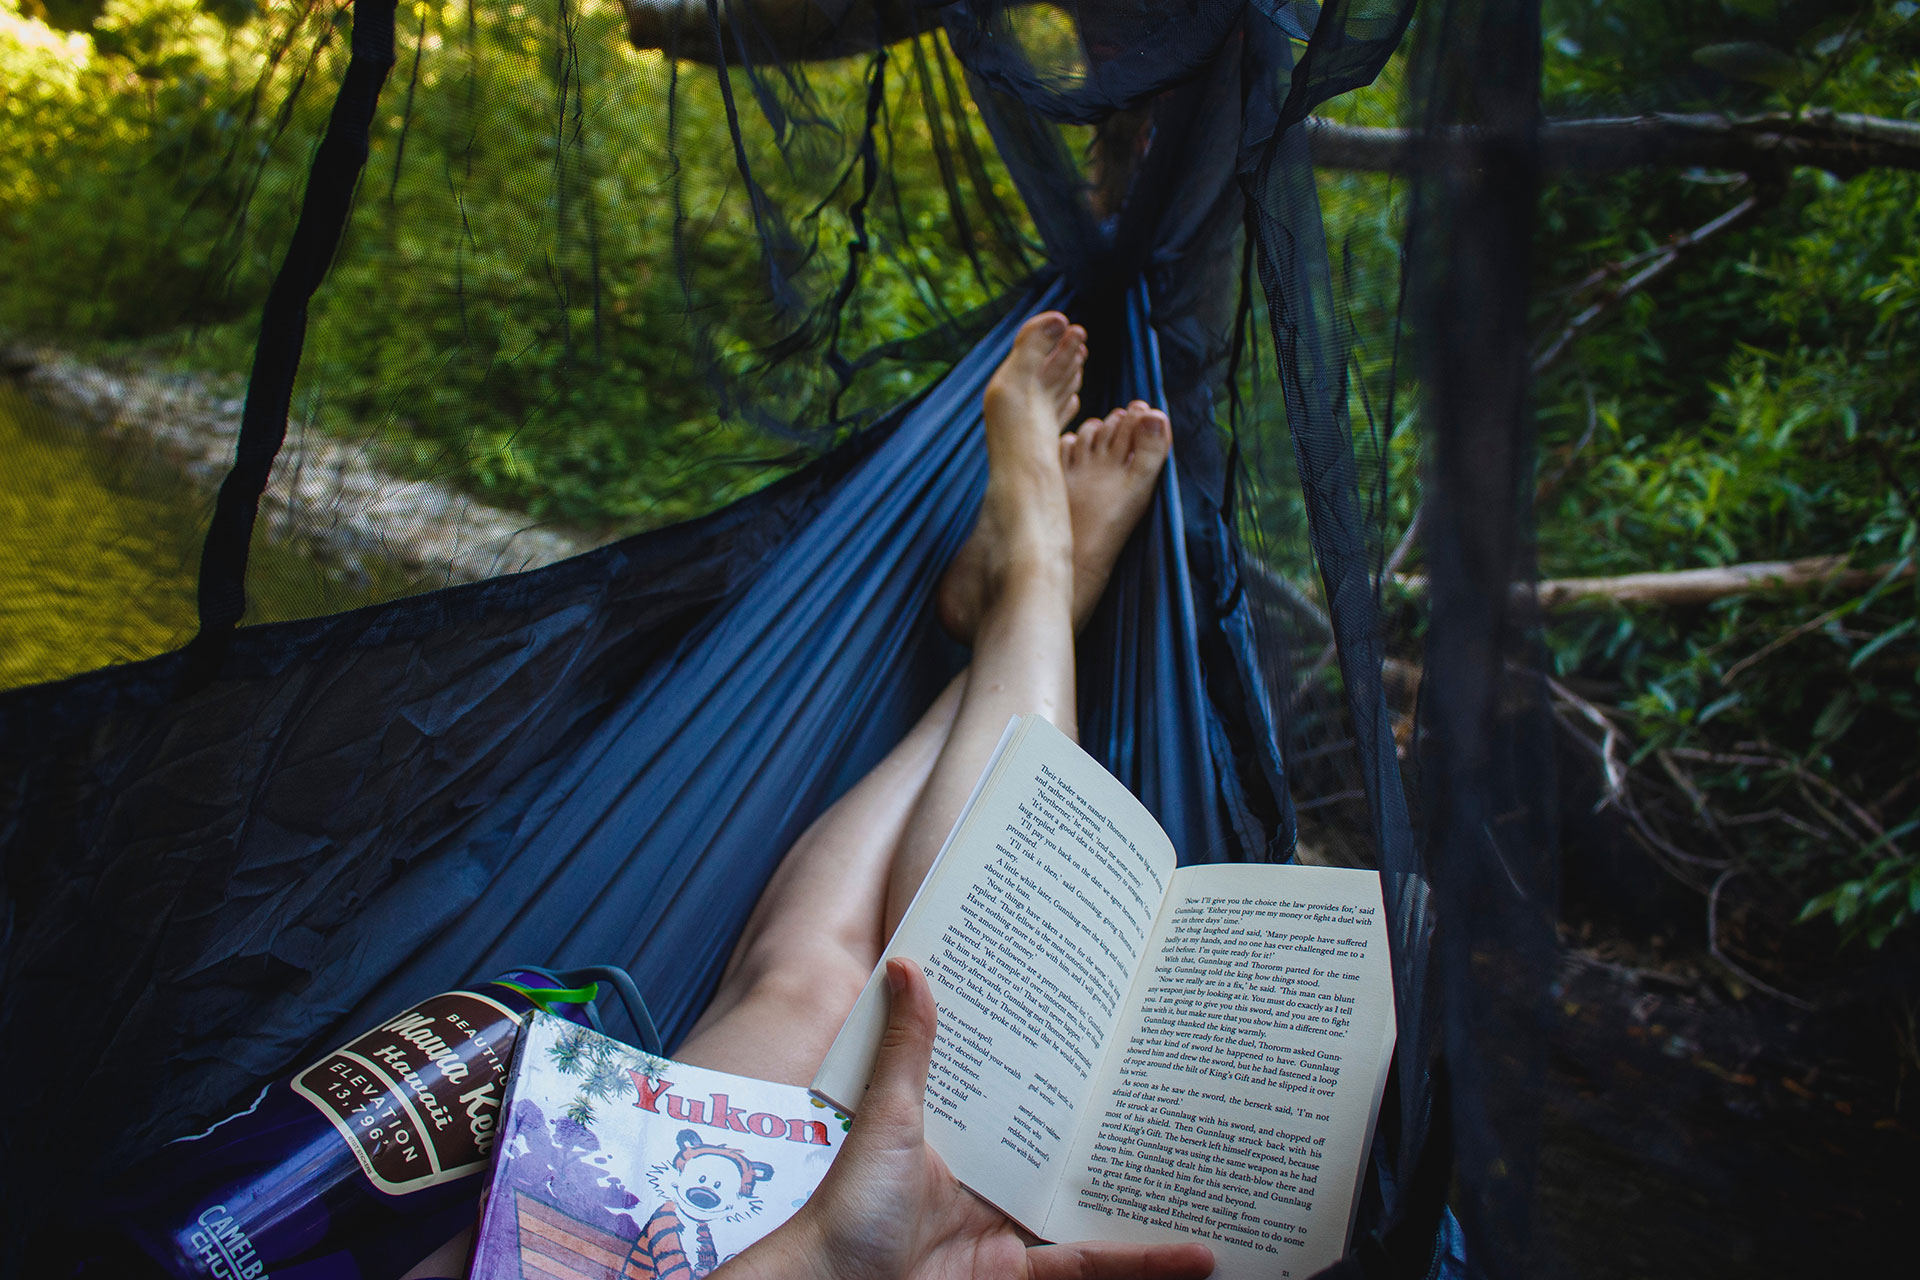 woman reading a book in a hammock by a river as part of her self care routine